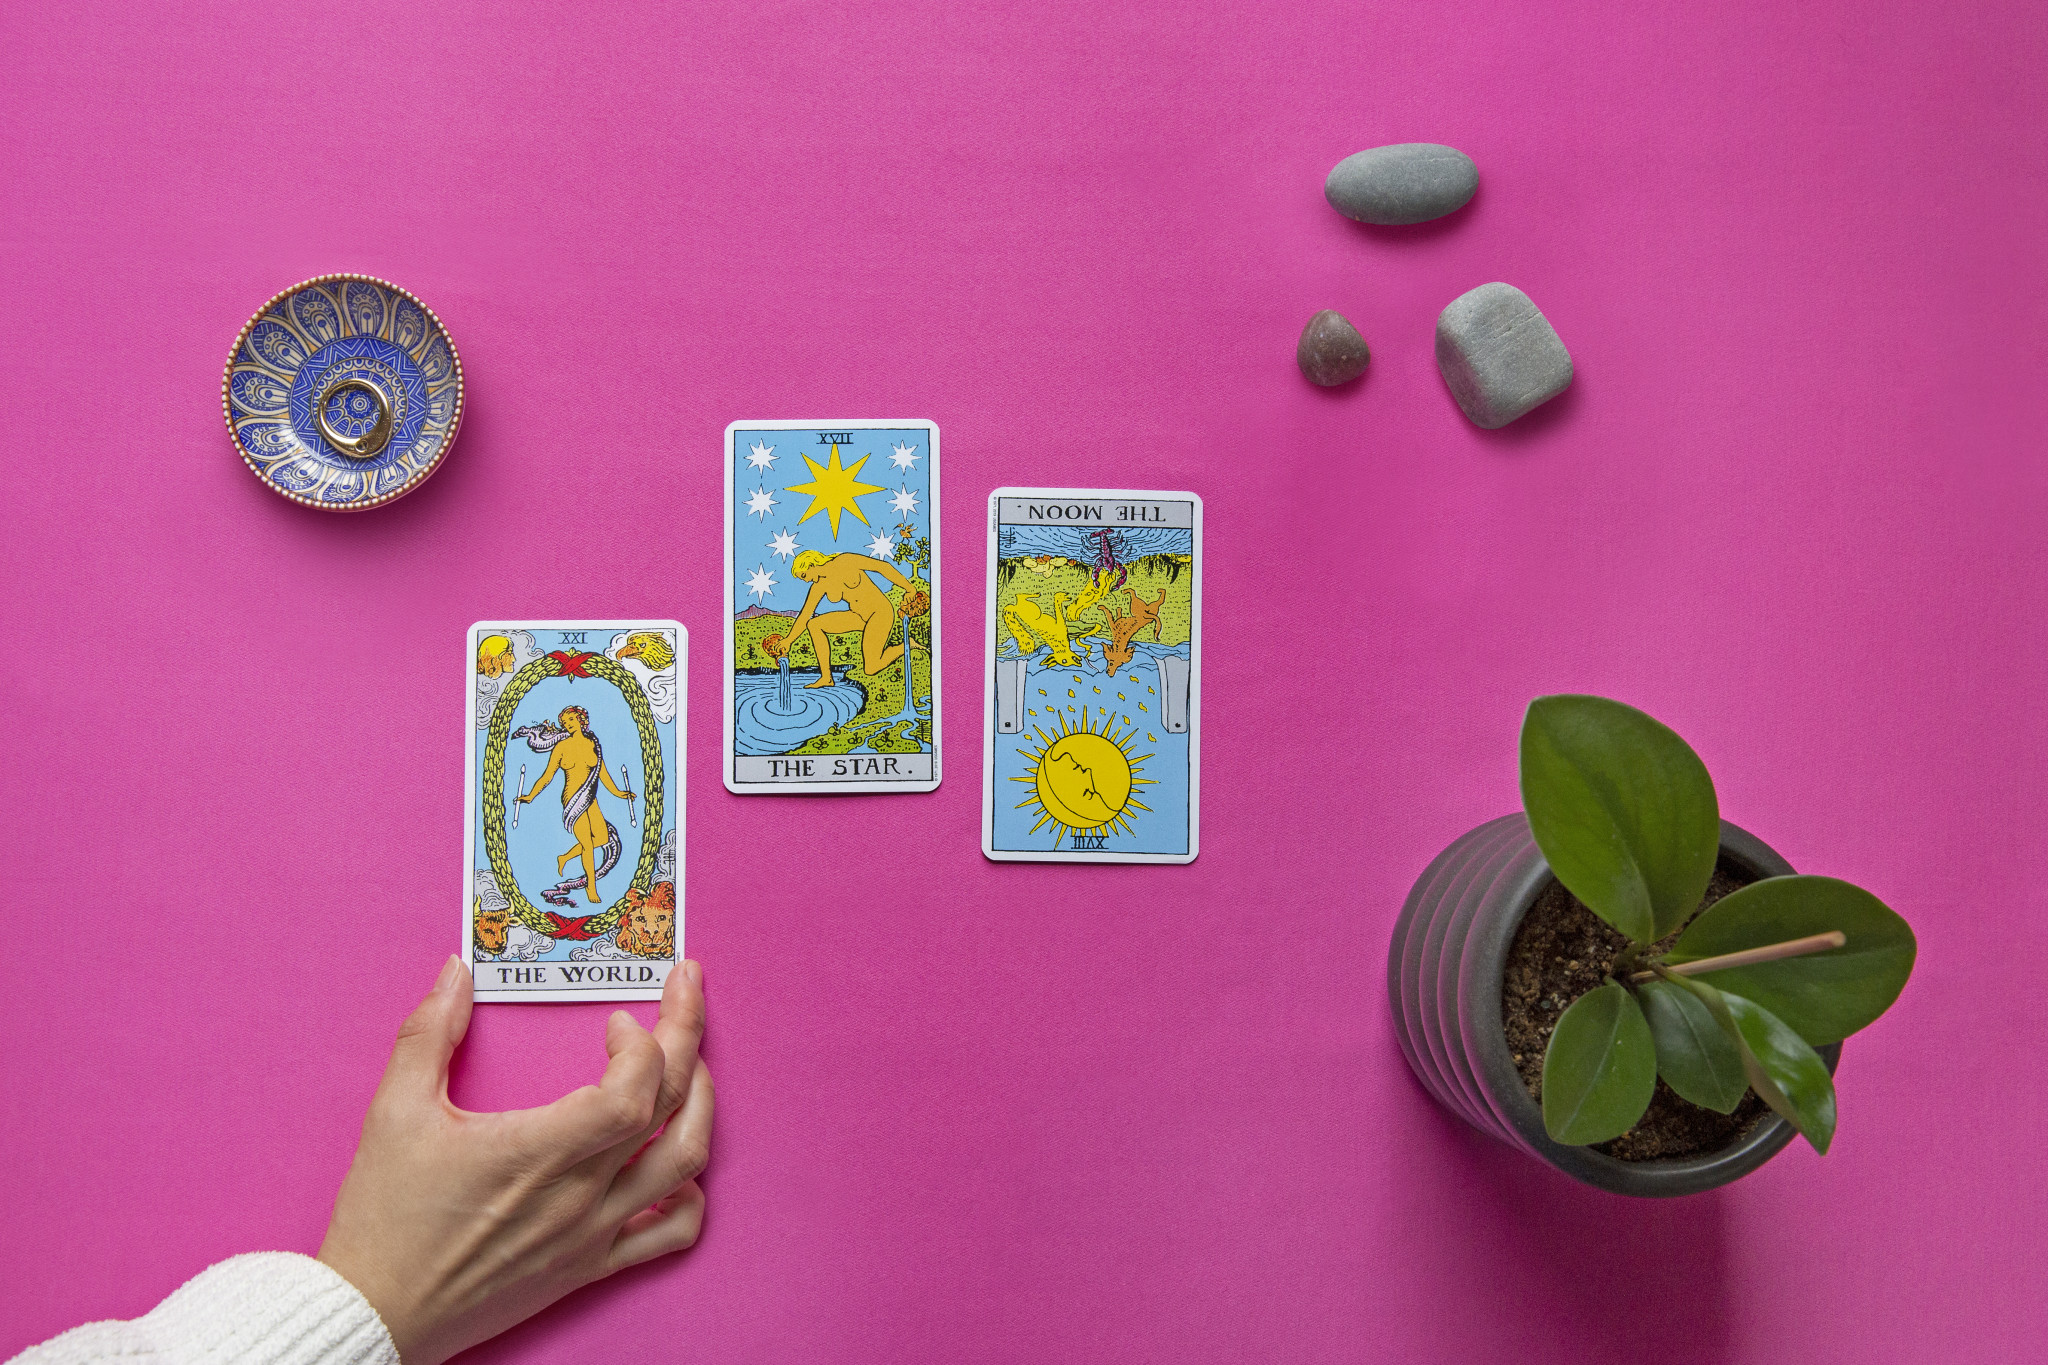 A hand touches one of three cards in a tarot spread, featuring the world, the star, and the moon